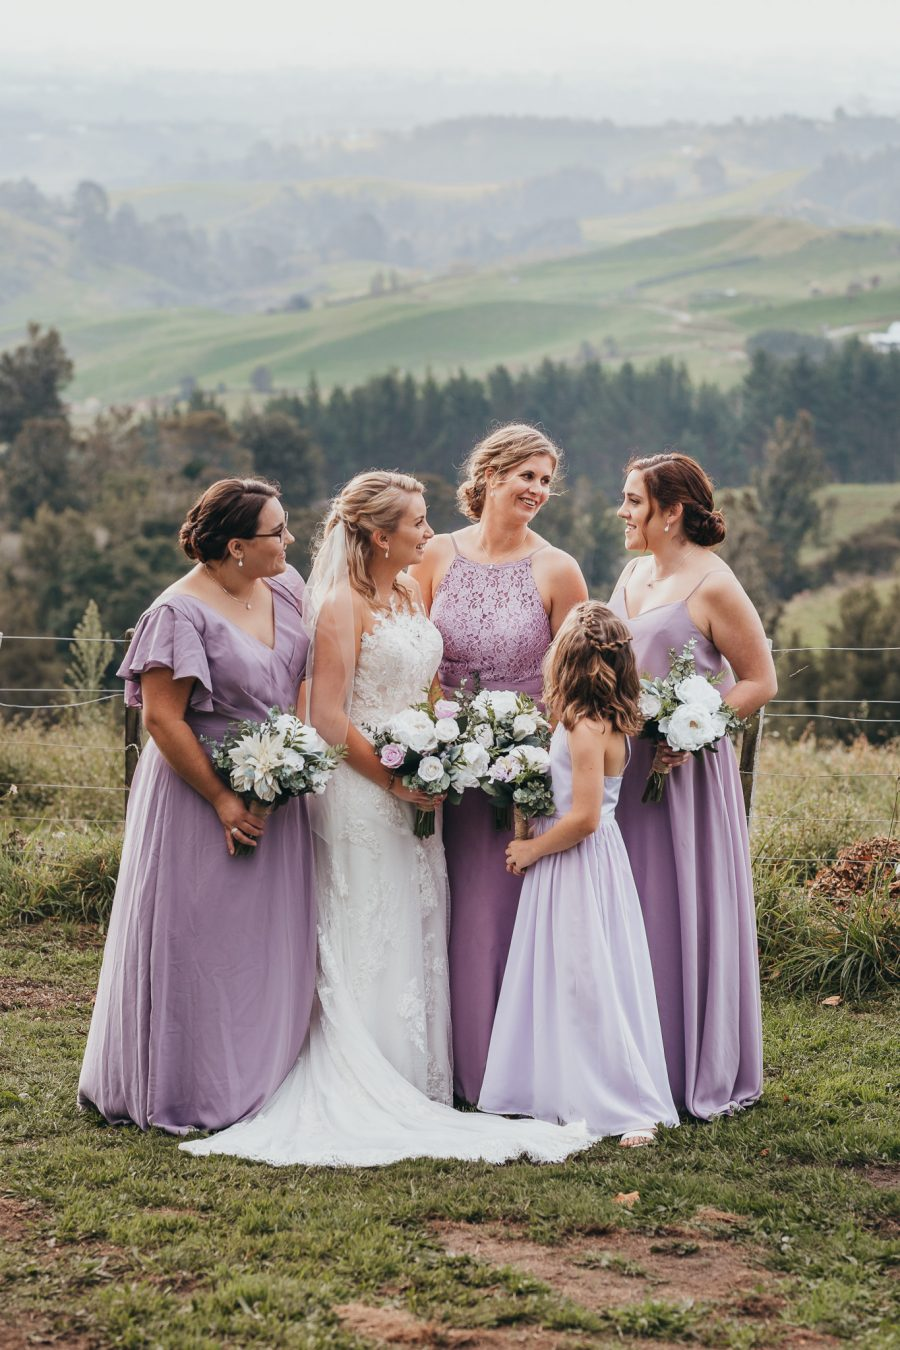 Bride with her bridesmaids in lavender